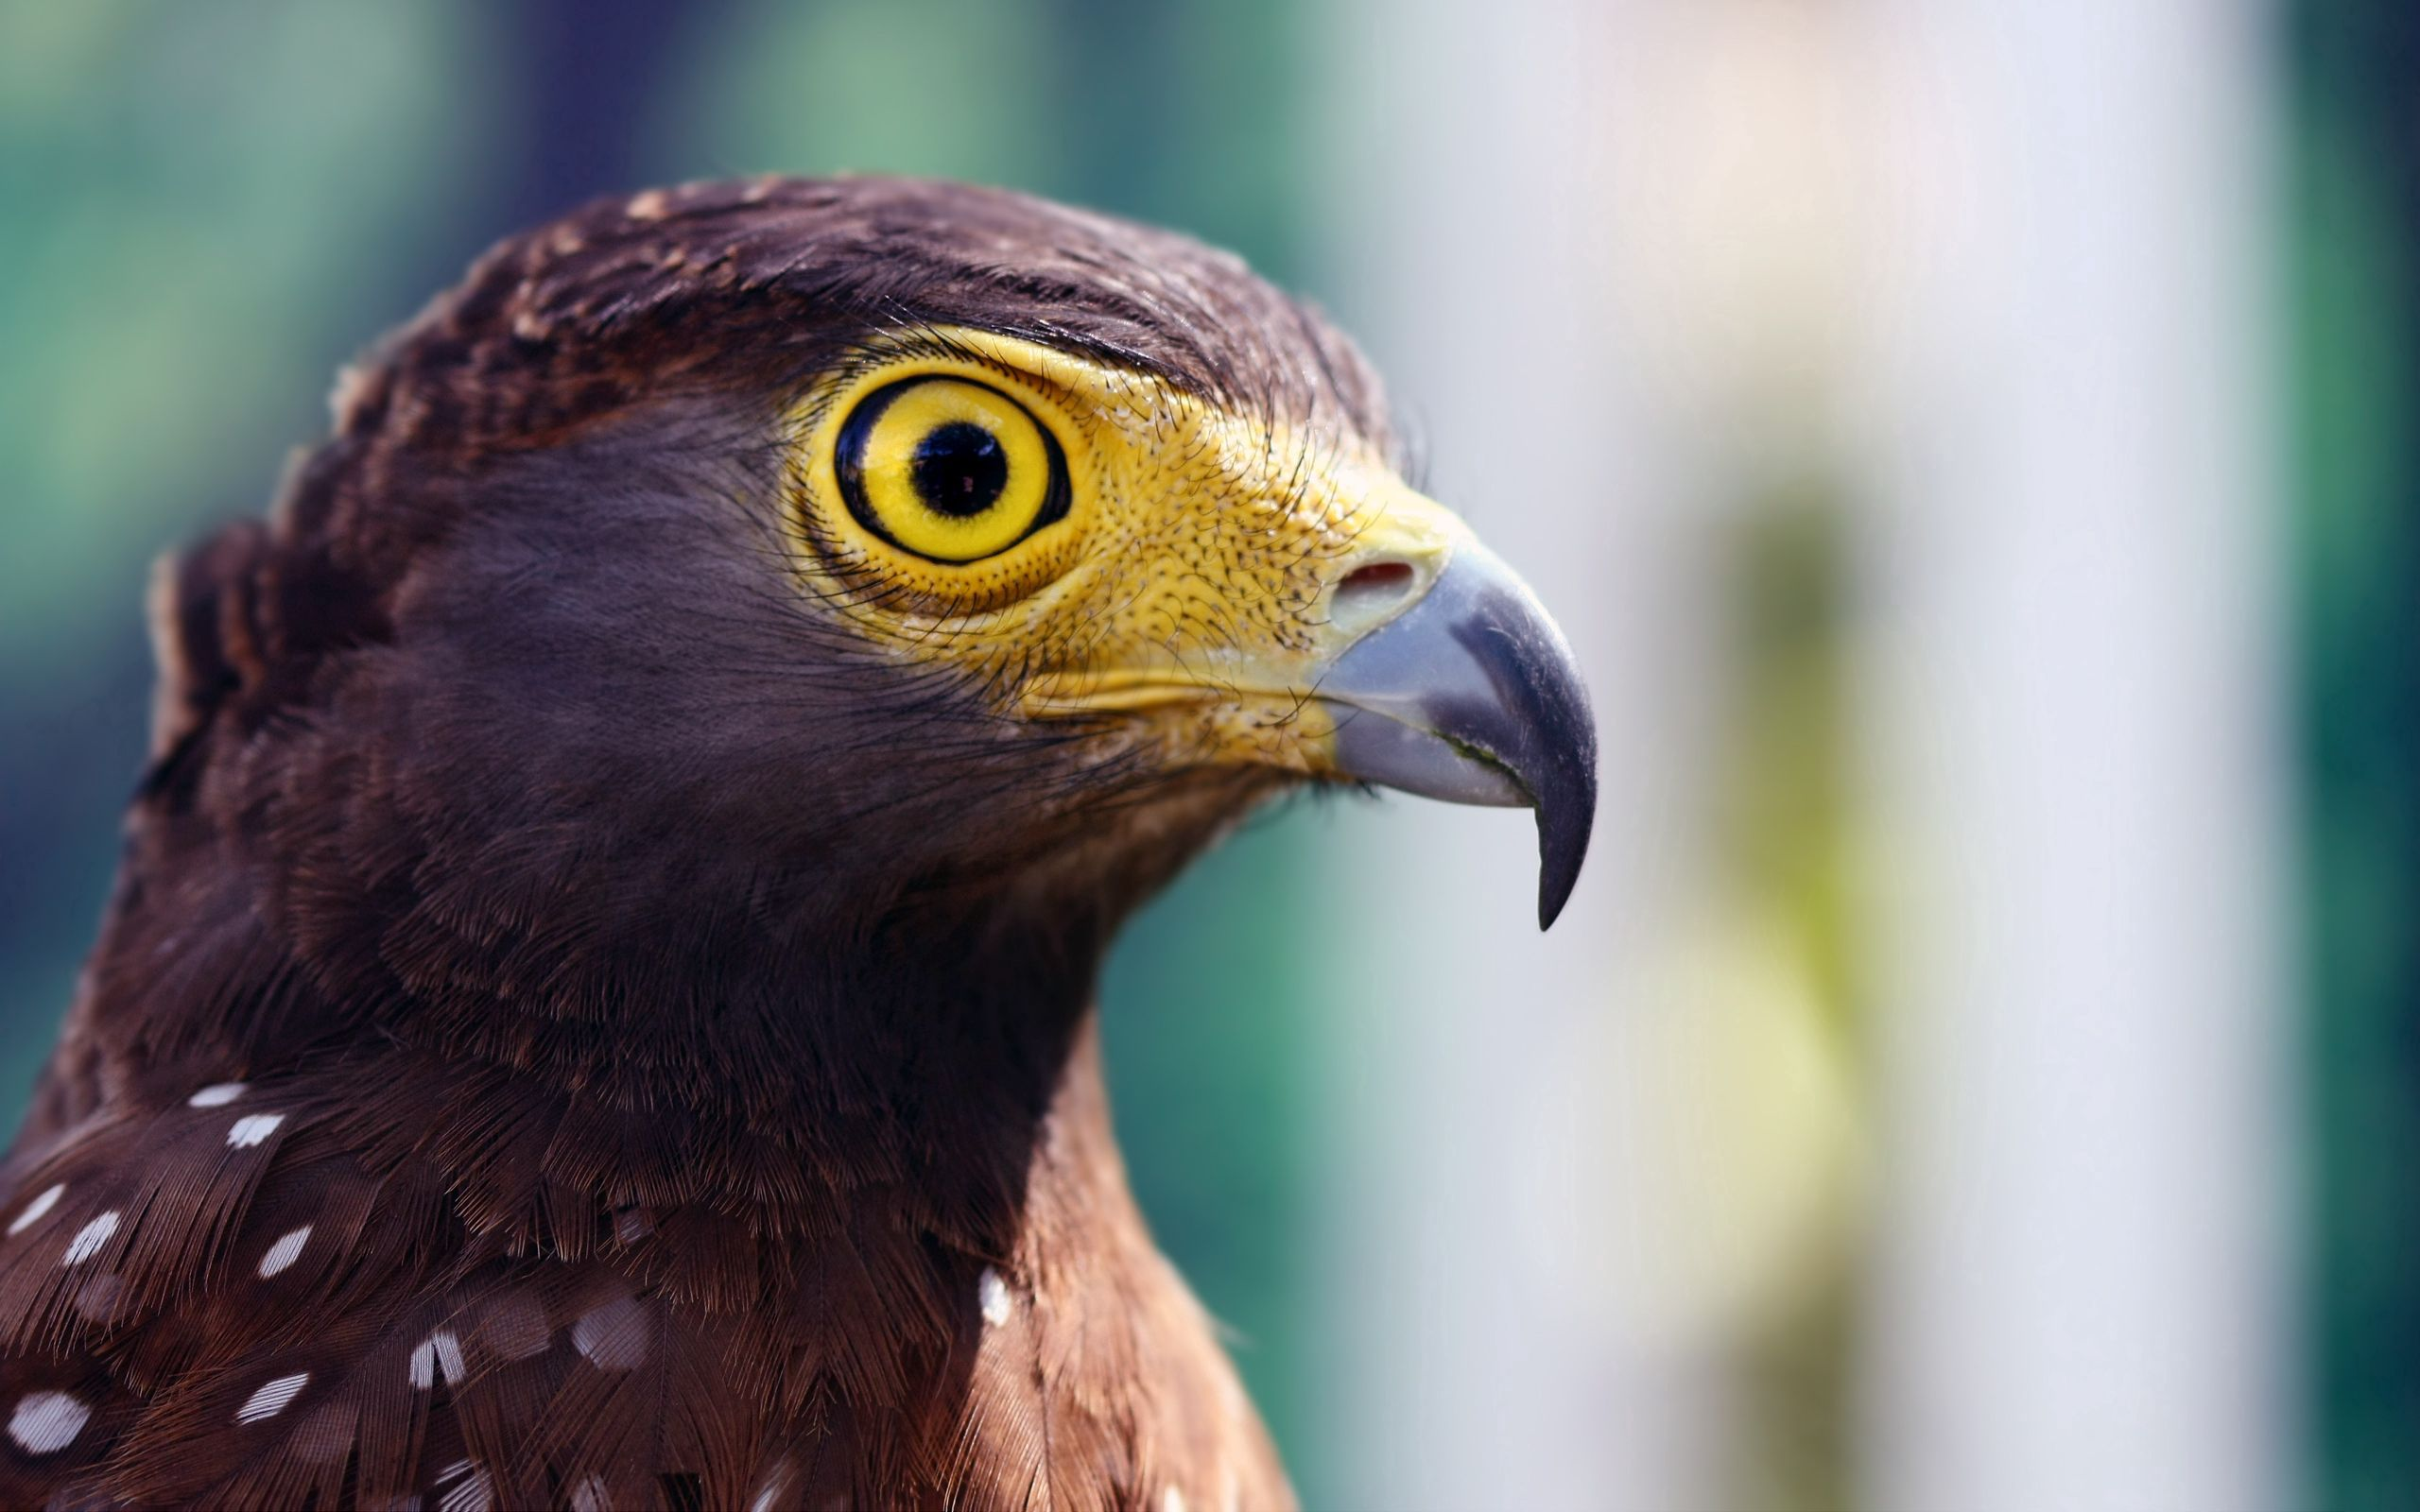 136762 download wallpaper Animals, Eagle, Head, Beak, Striped, Eye screensavers and pictures for free